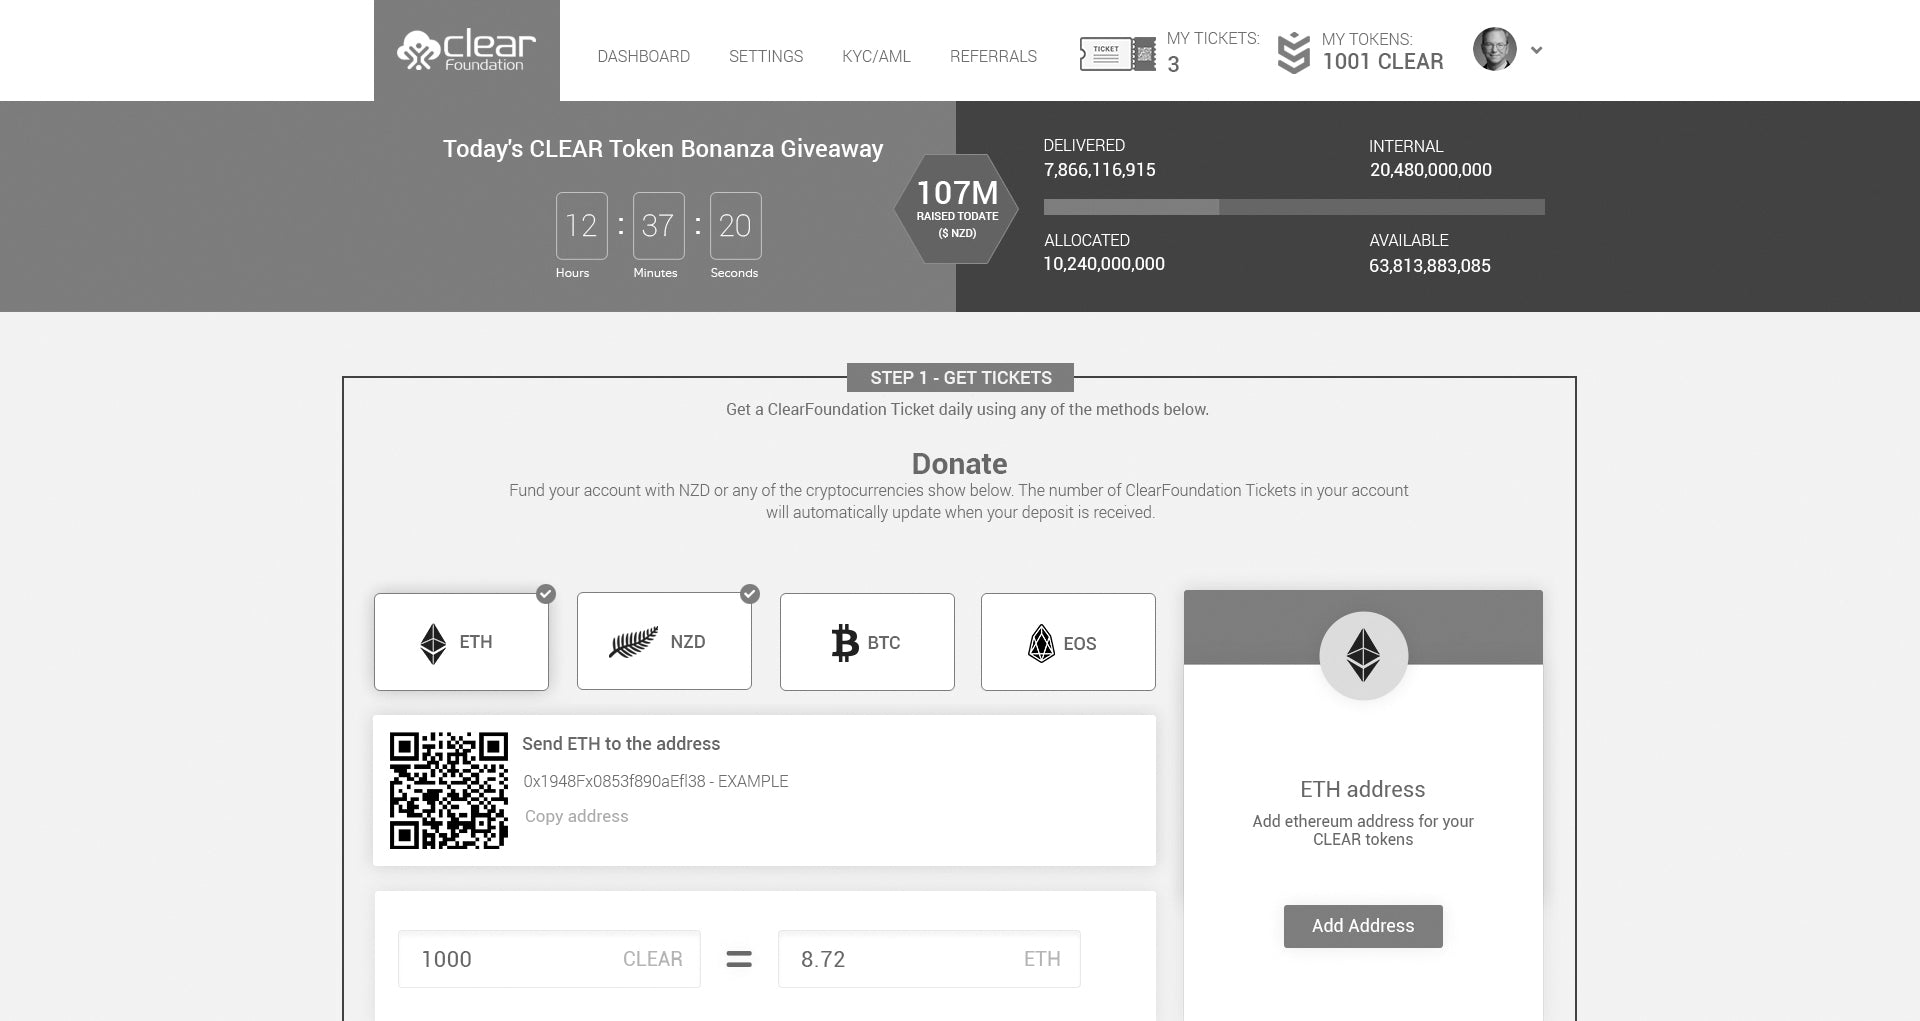 ClearFoundation Announces its Invite-based Public Bonanza Giveaway of up to 10 Million CLEAR Tokens Daily